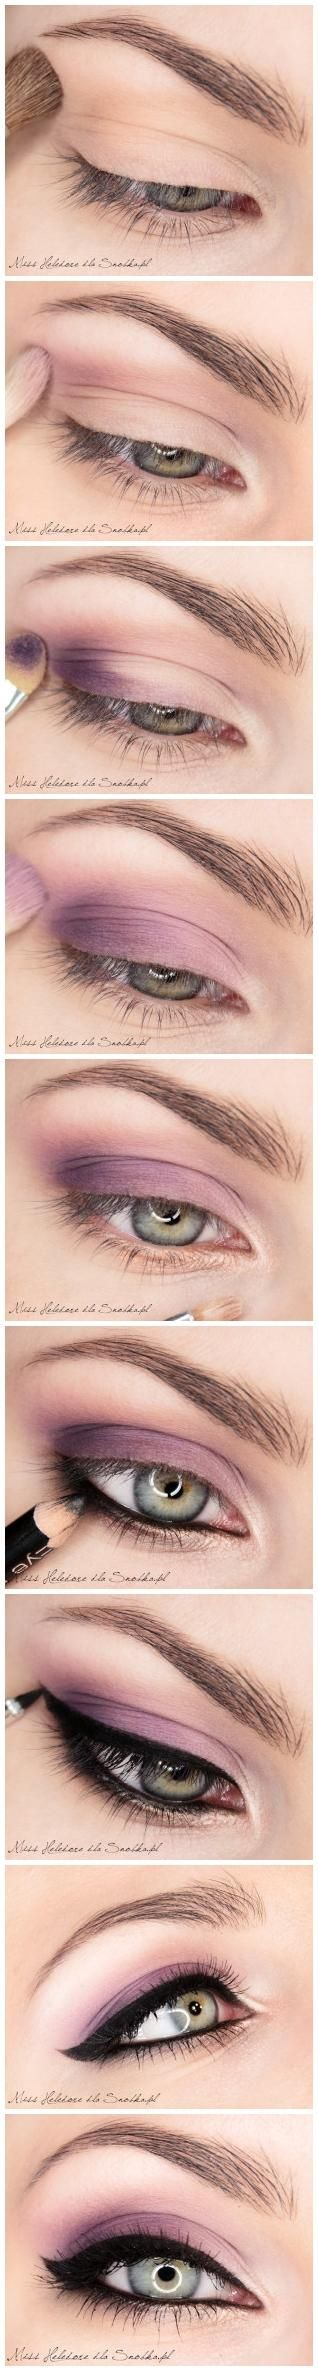 eyeliner + purple eye shadow: Purple Eyeshadows, Make Up, Cat Eye, Eye Shadows, Eyemakeup, Smokey Eye, Green Eye, Eye Makeup Tutorials, Greeney